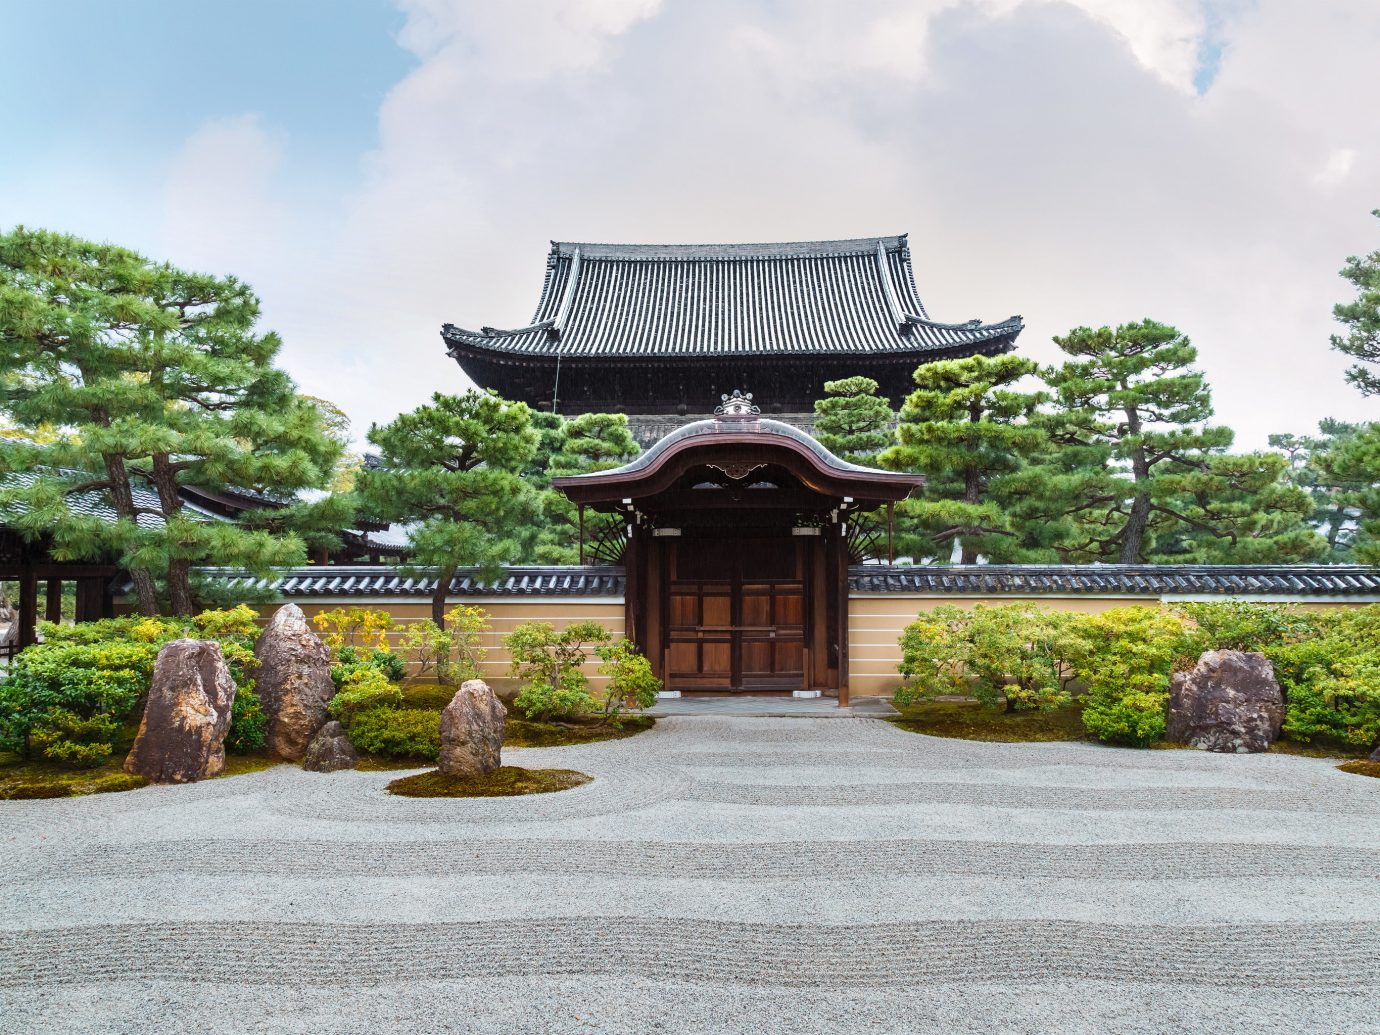 Beauty Health + Wellness Japan Kyoto San Francisco Travel Tips chinese architecture japanese architecture tree Garden temple historic site shinto shrine shrine estate plant pagoda outdoor structure landscape landscaping tourism leisure pavilion grass